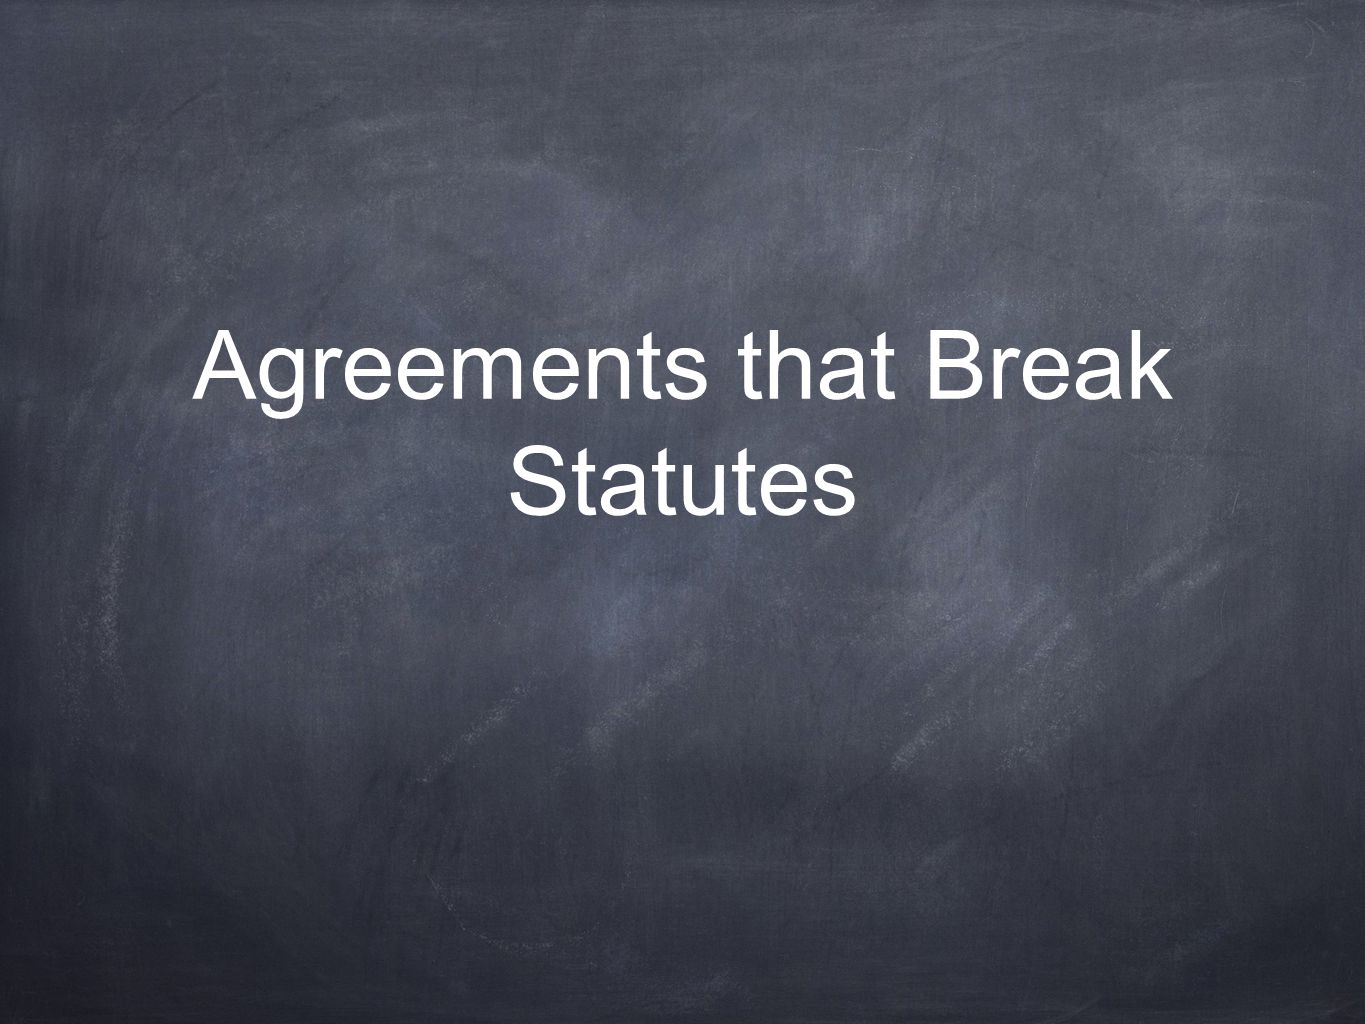 Agreements that Break Statutes